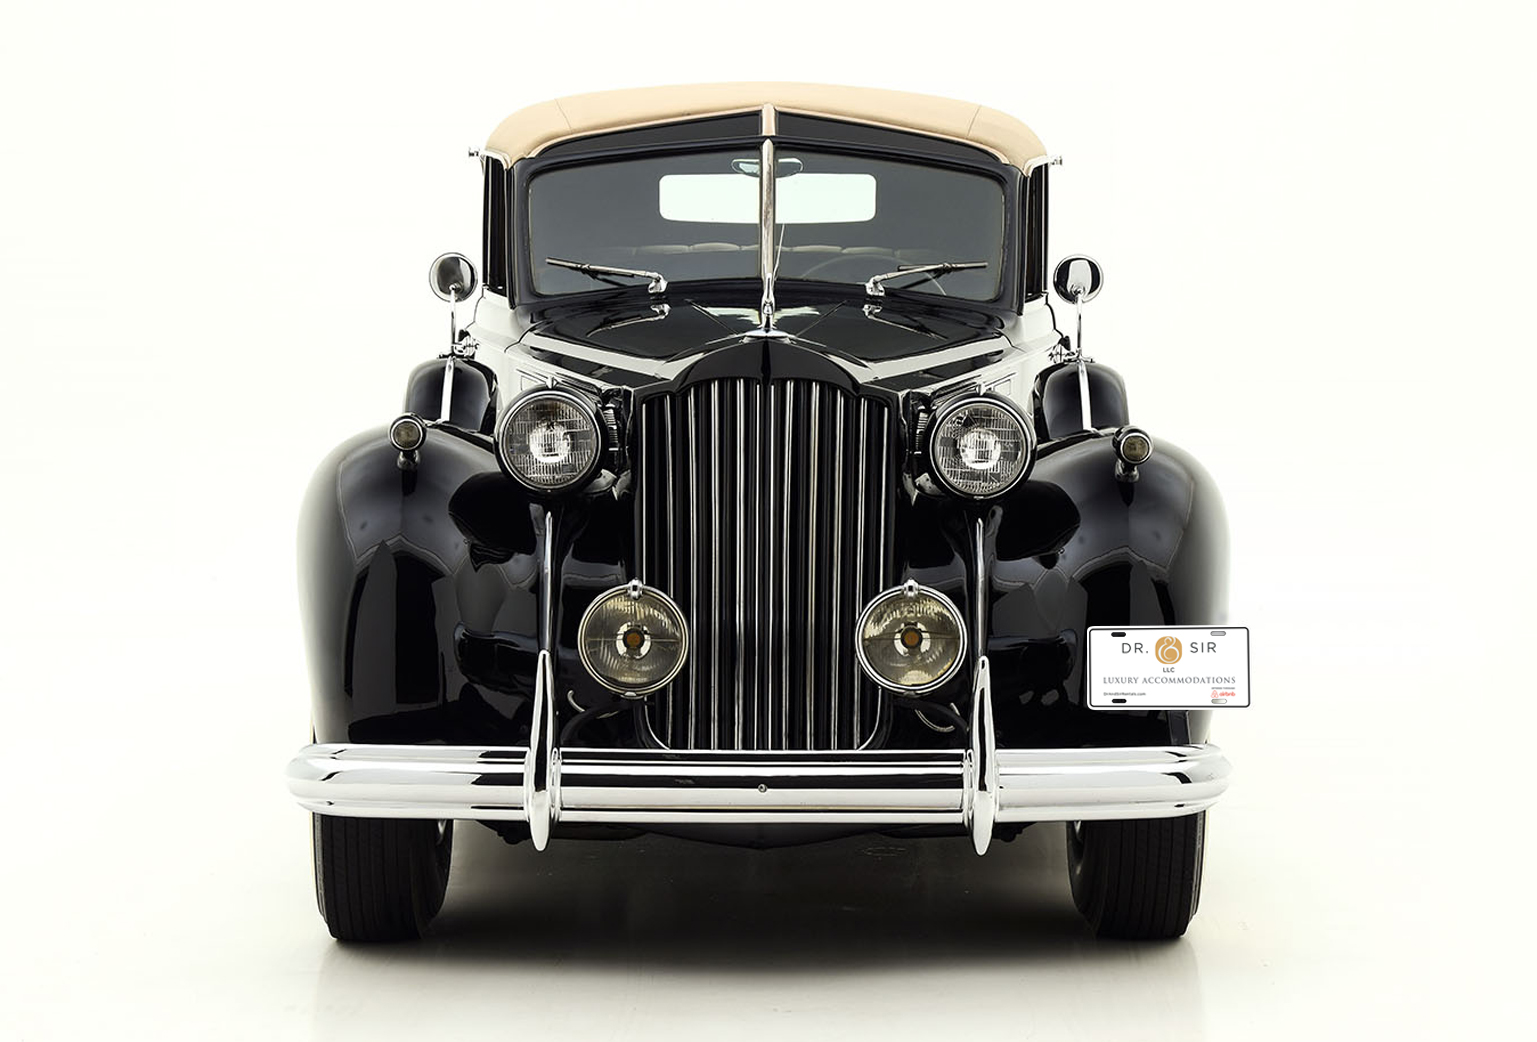 Luxury Dr. & Sir Accommodations Now Offer Guests Chic Vintage Transport: A Chauffeur-Driven 1939 Packard